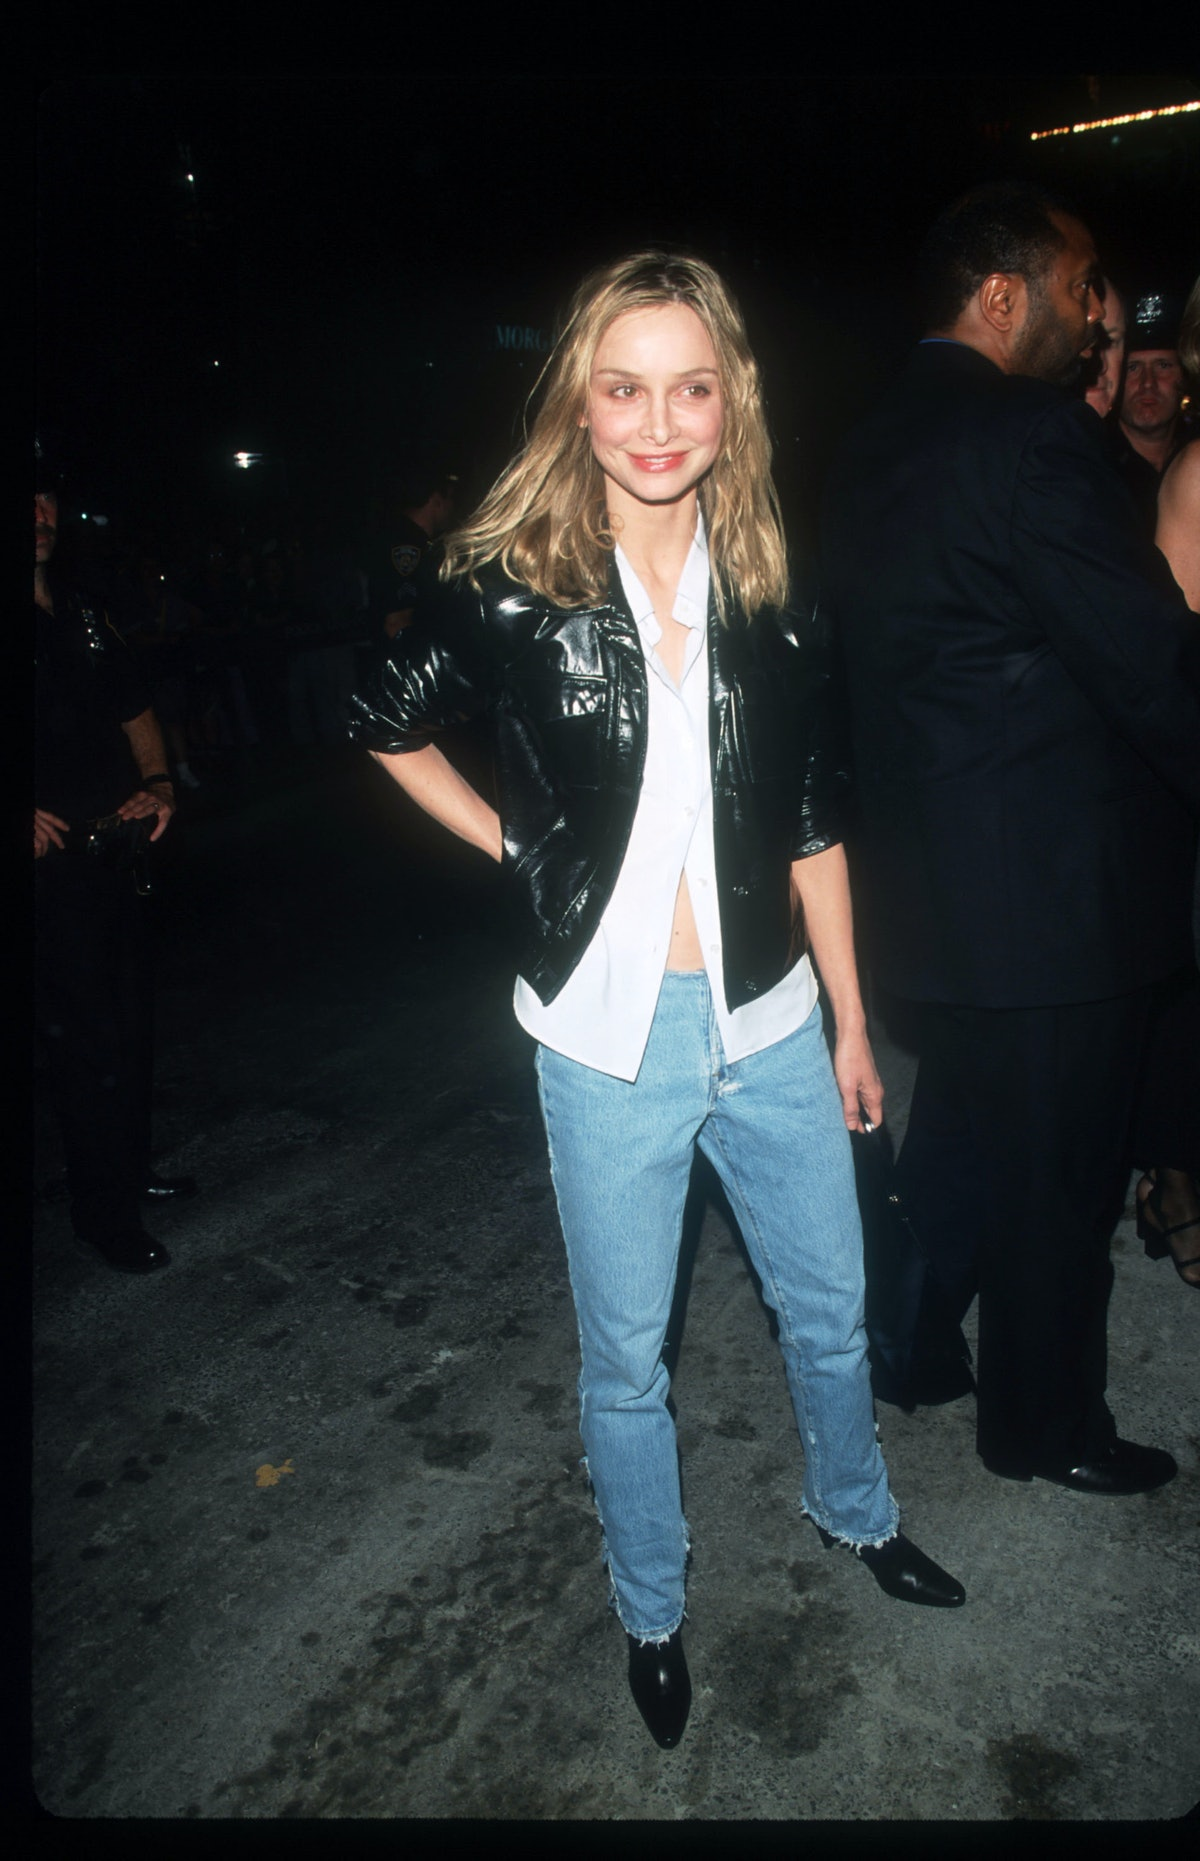 Actress Calista Flockhart in jeans